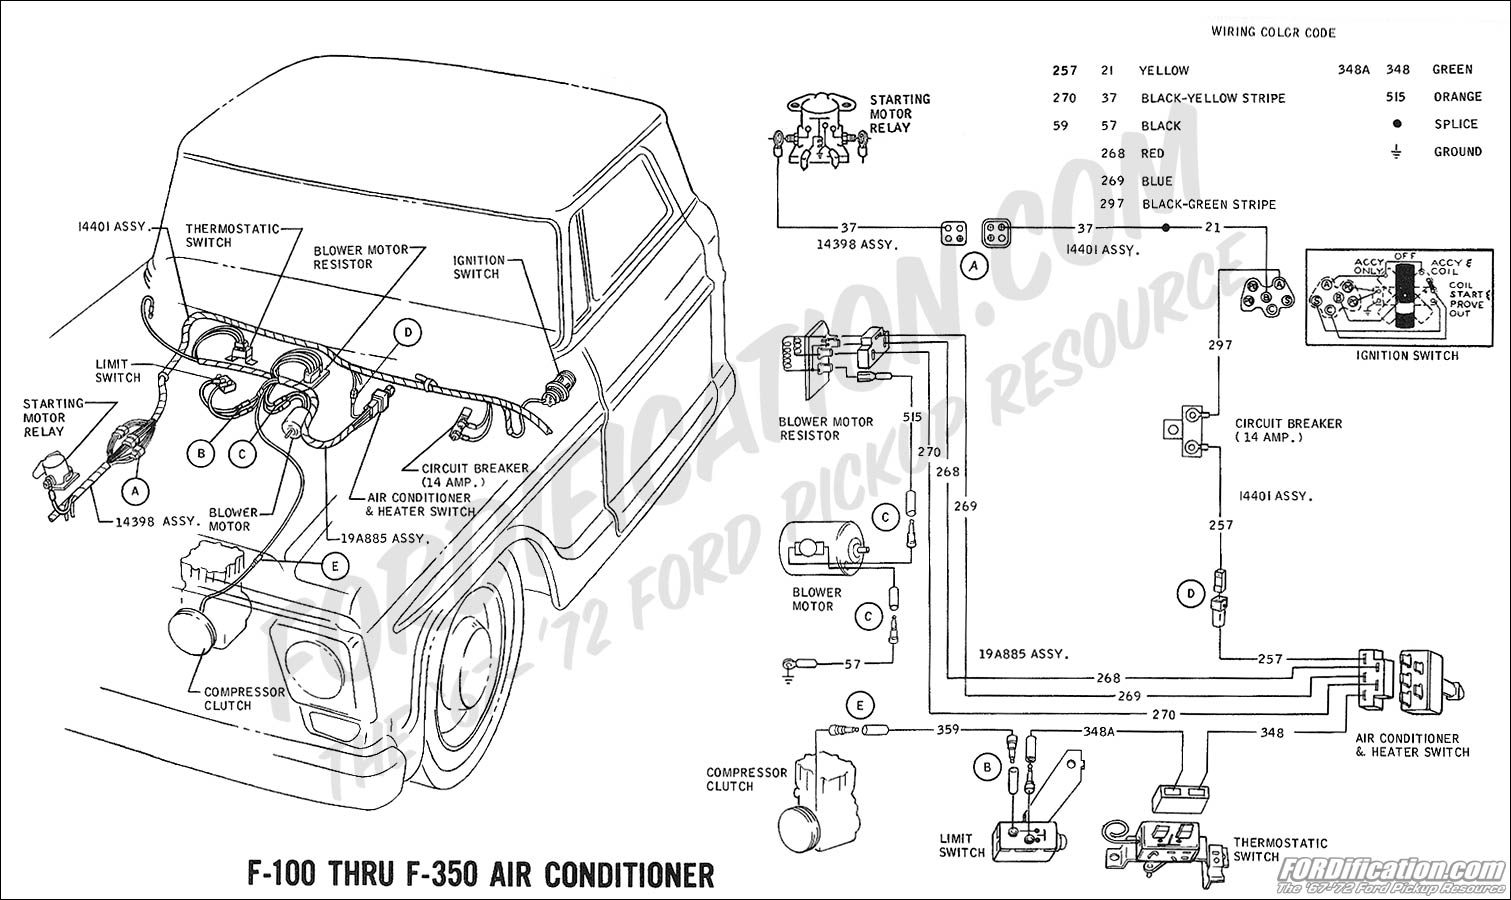 1996 ford bronco rear brake diagram